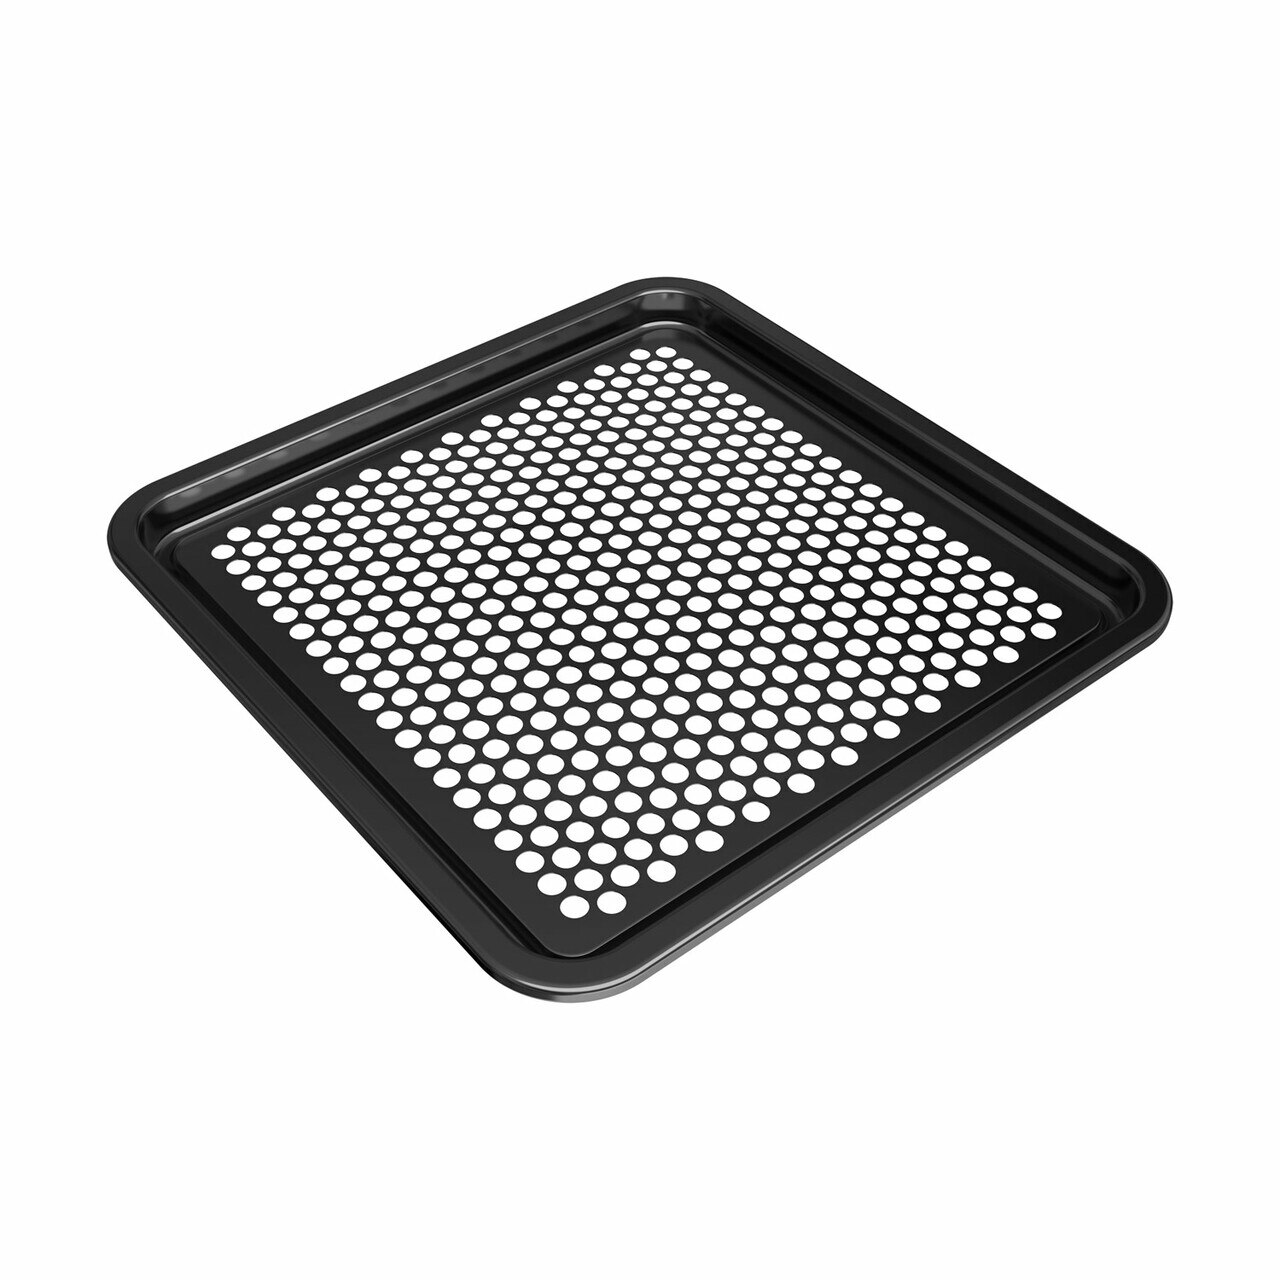 Sharp Superheated Steam Countertop Oven (SSC0586DS) – Crisper Tray